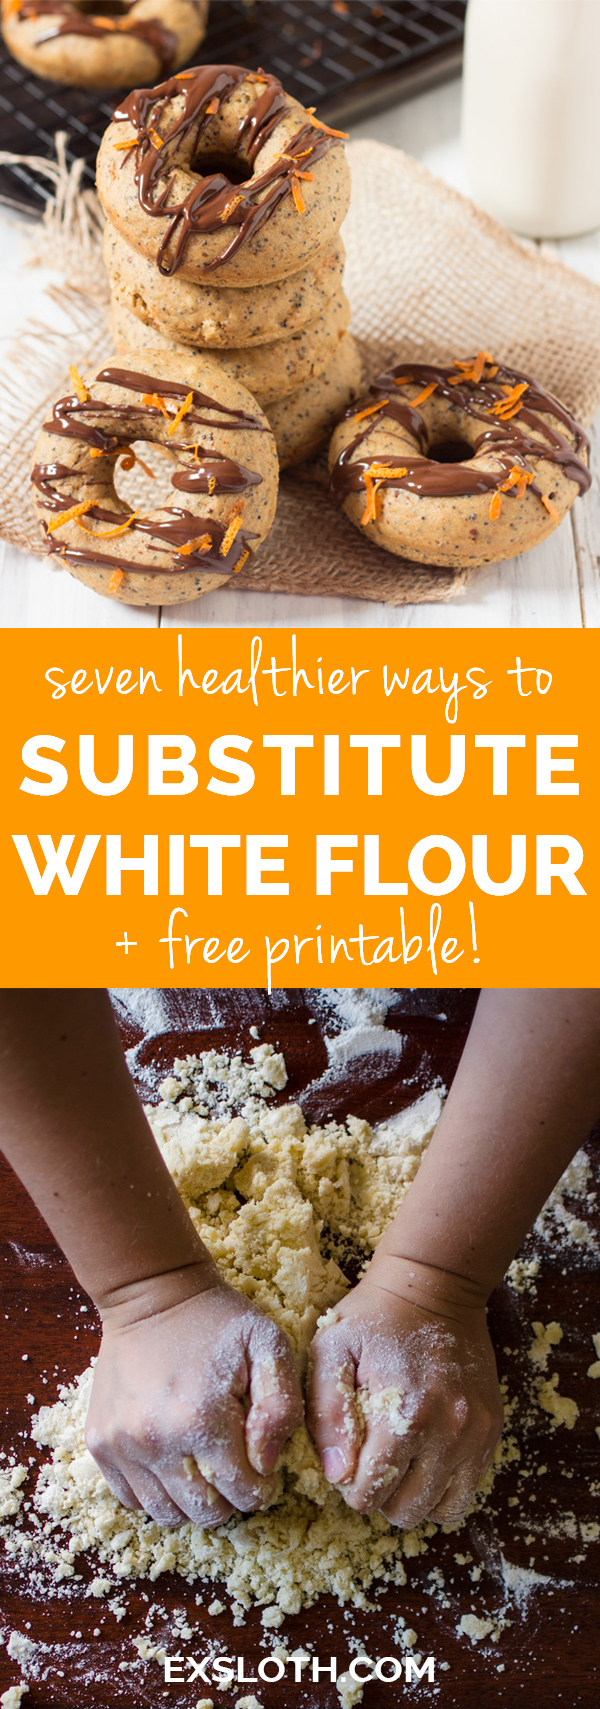 7 healthier ways to replace white flour when baking (whole wheat, spelt, oats and mroe) via @ExSloth | ExSloth.com